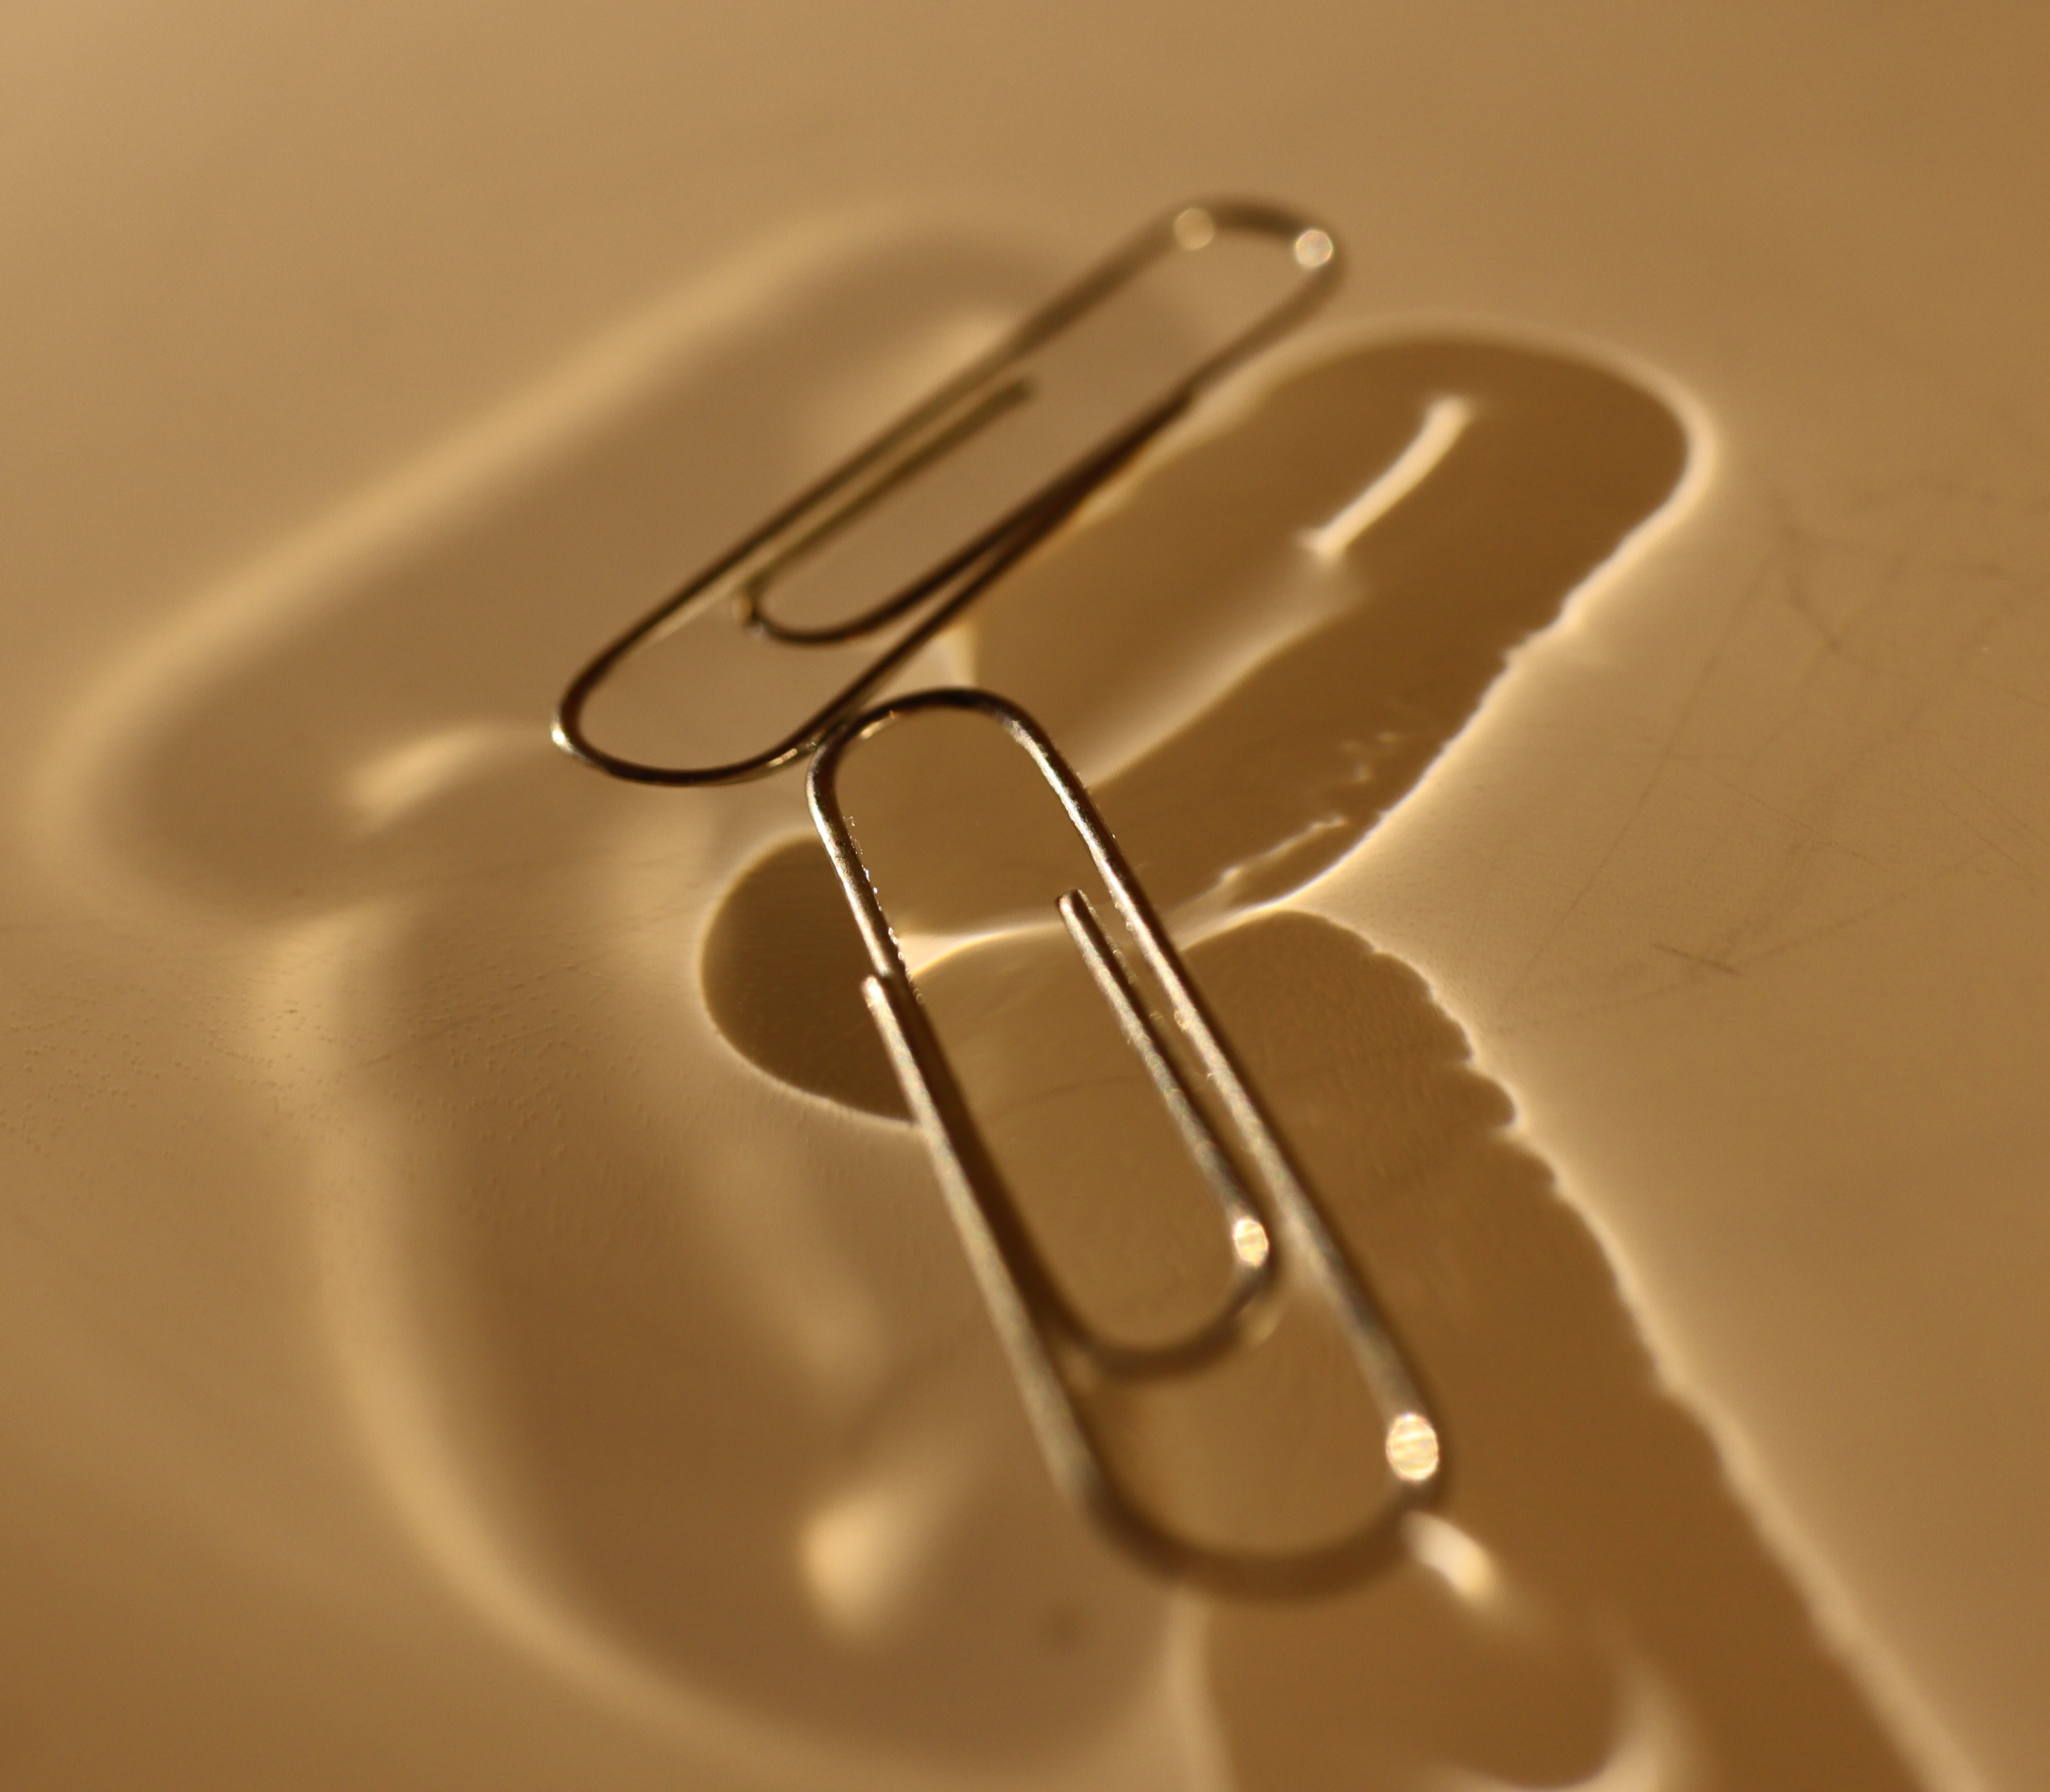 surface tension can make paperclips float